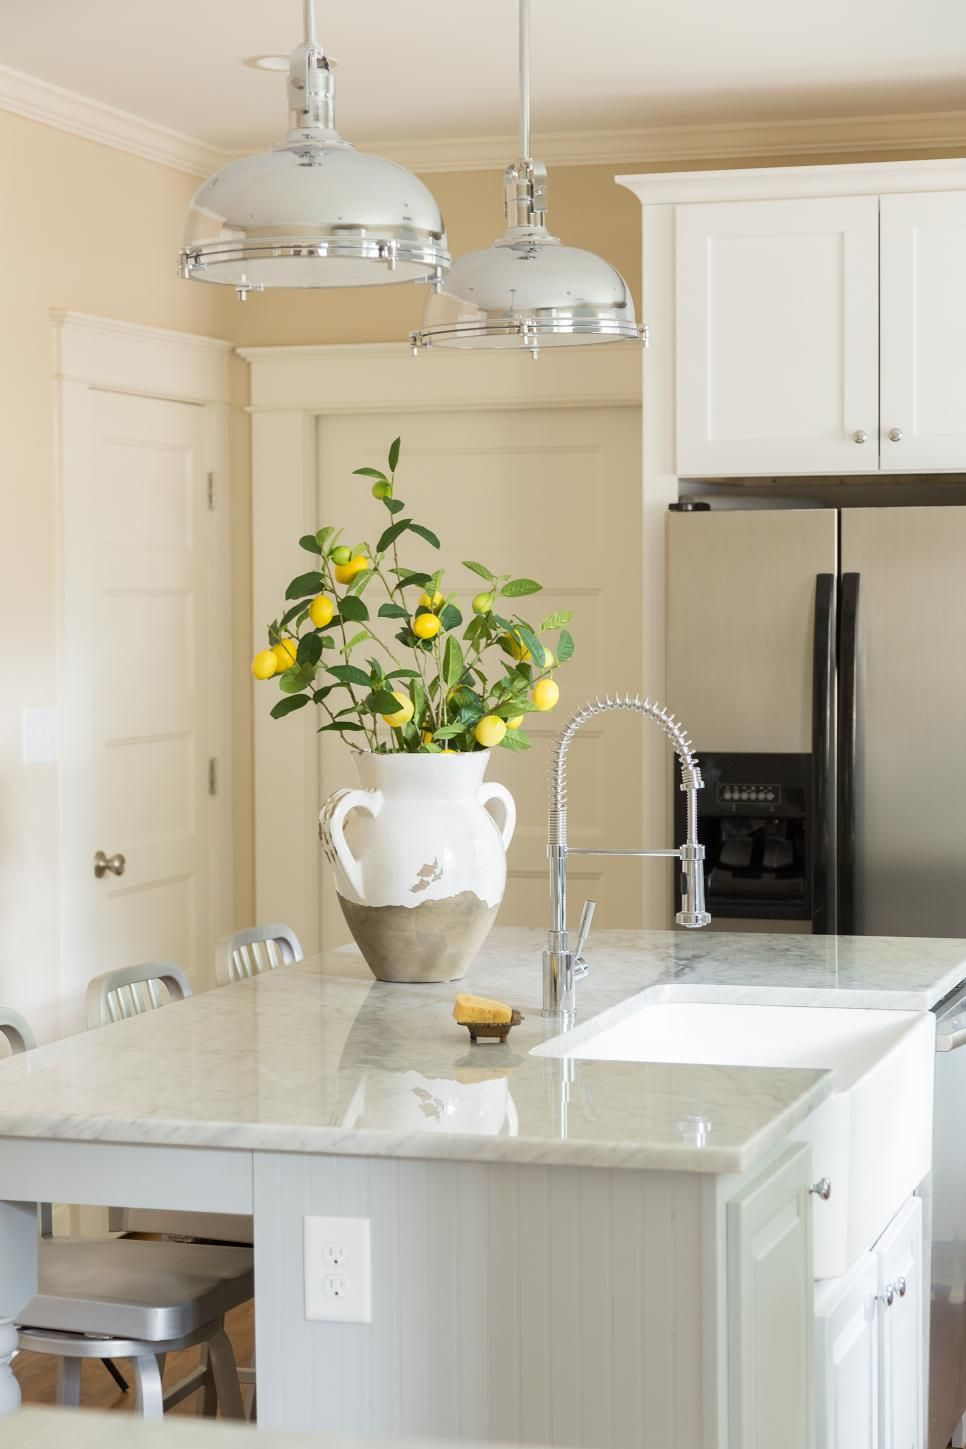 An apron sink and industrial pendants blend seamlessly in this